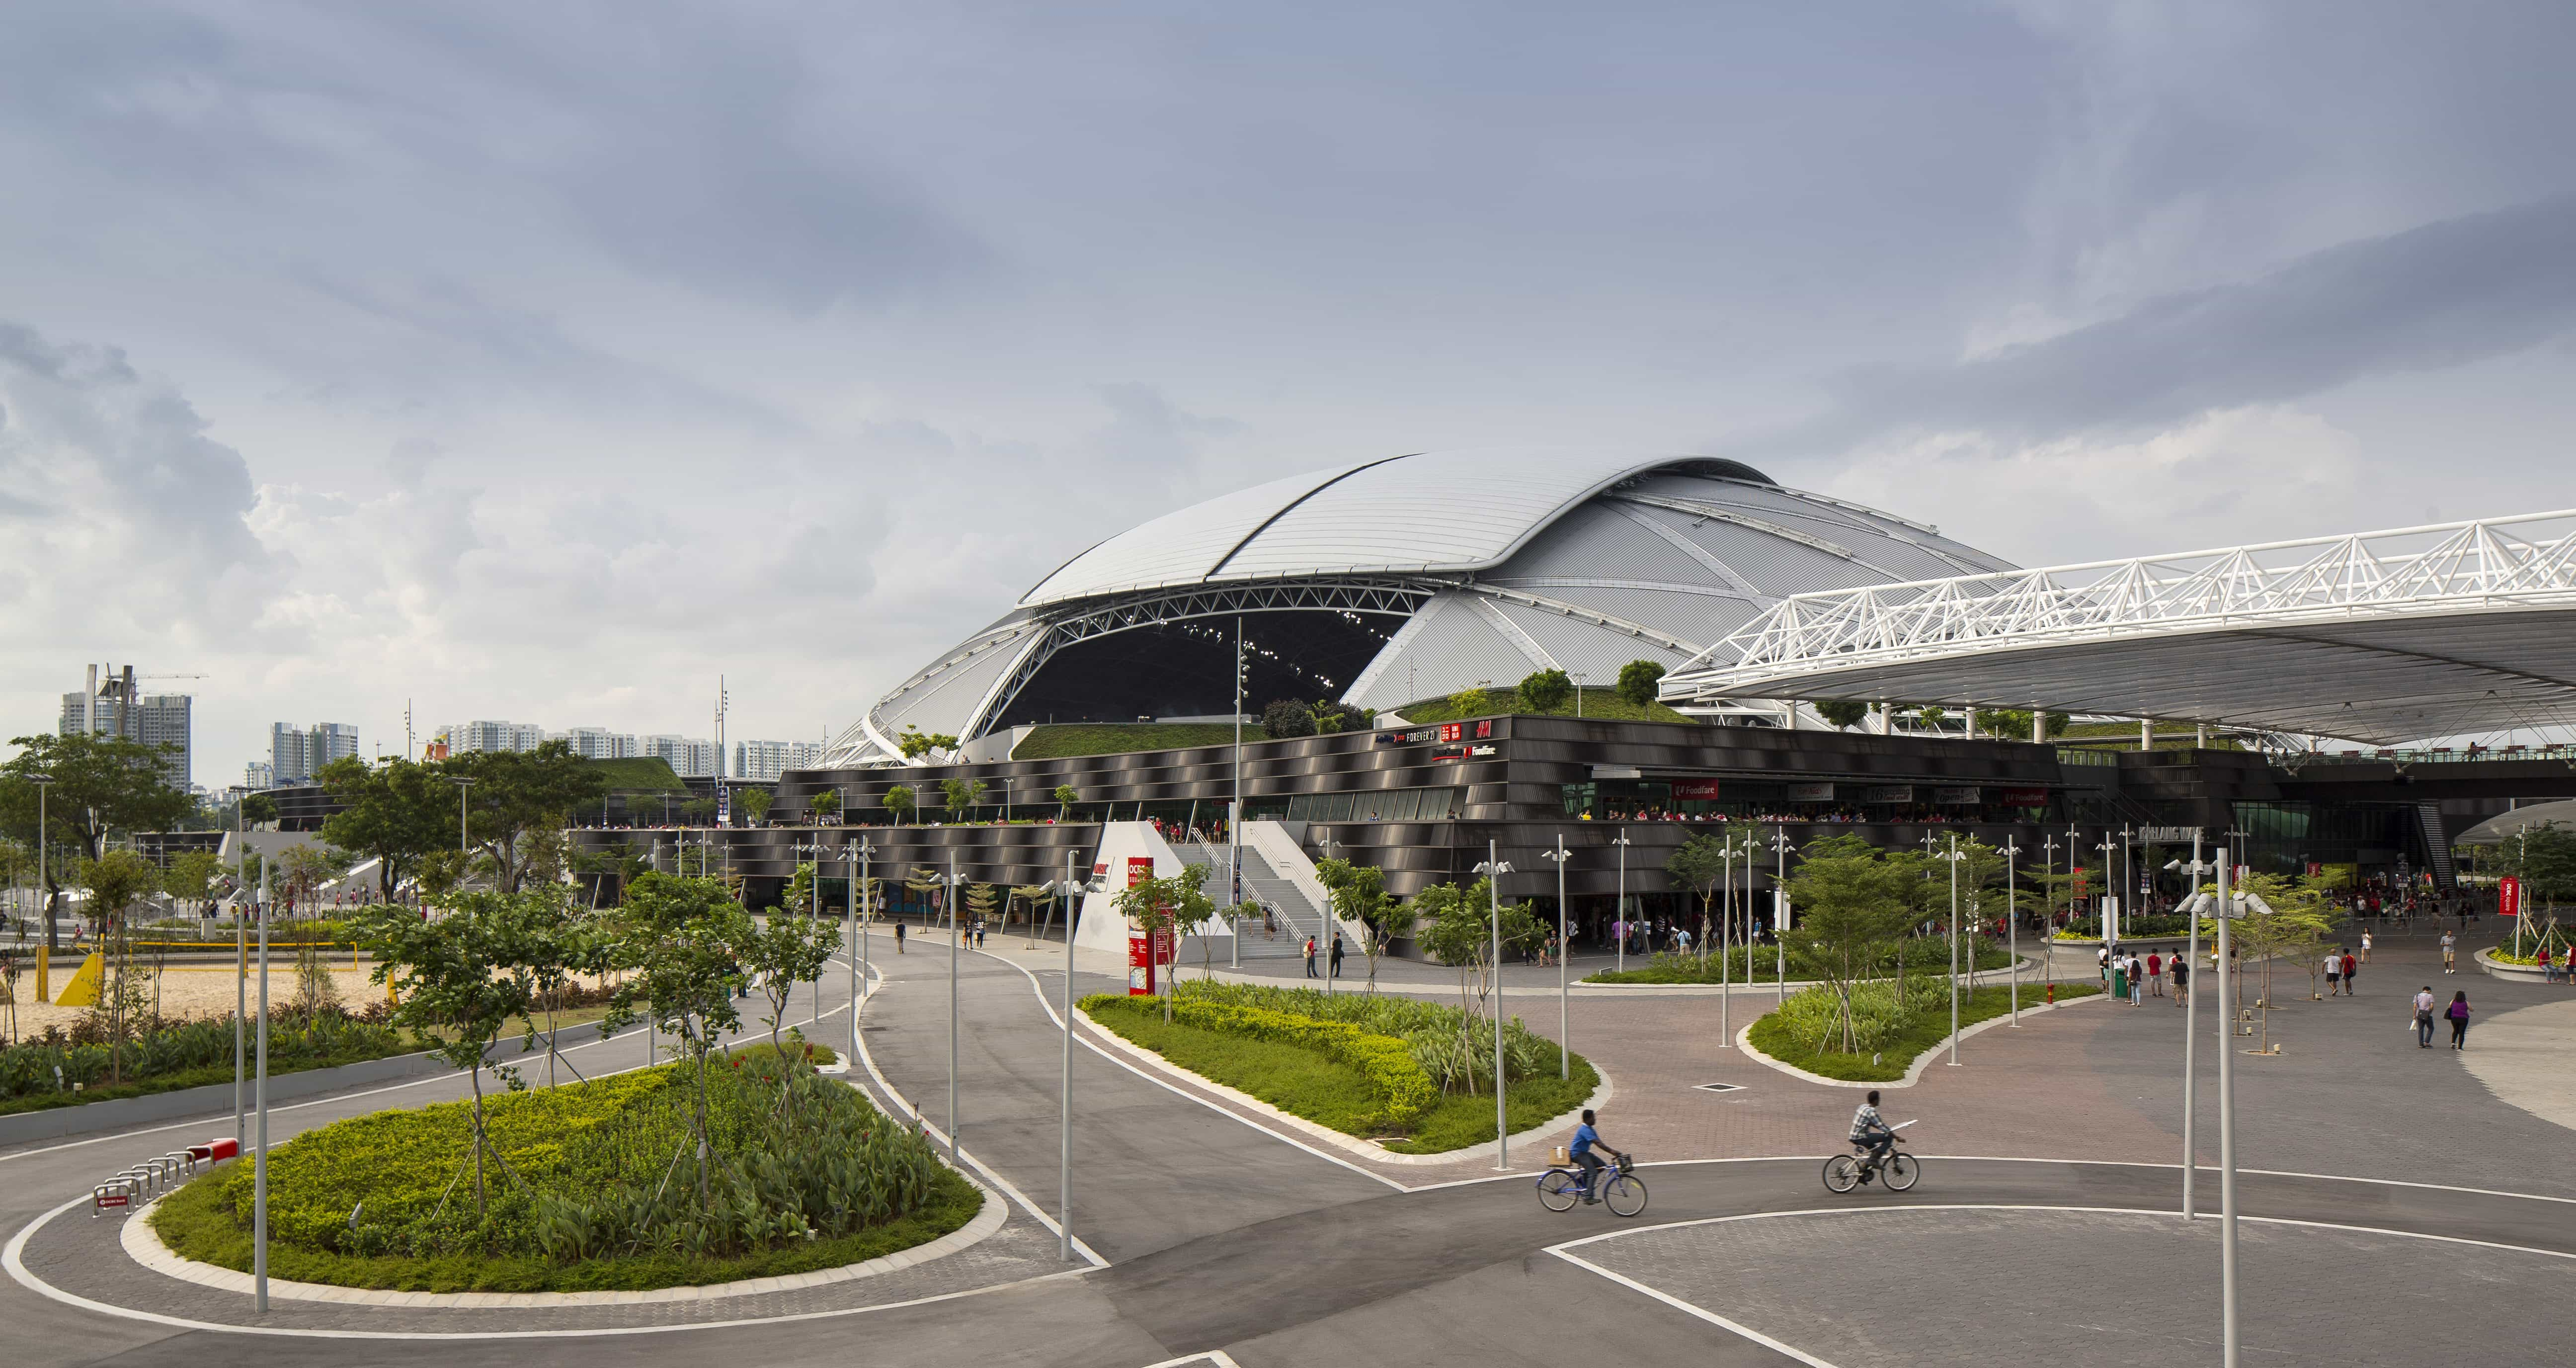 Education stadia and arenas sports and leisure healthcare residential - Singapore Sports Hub